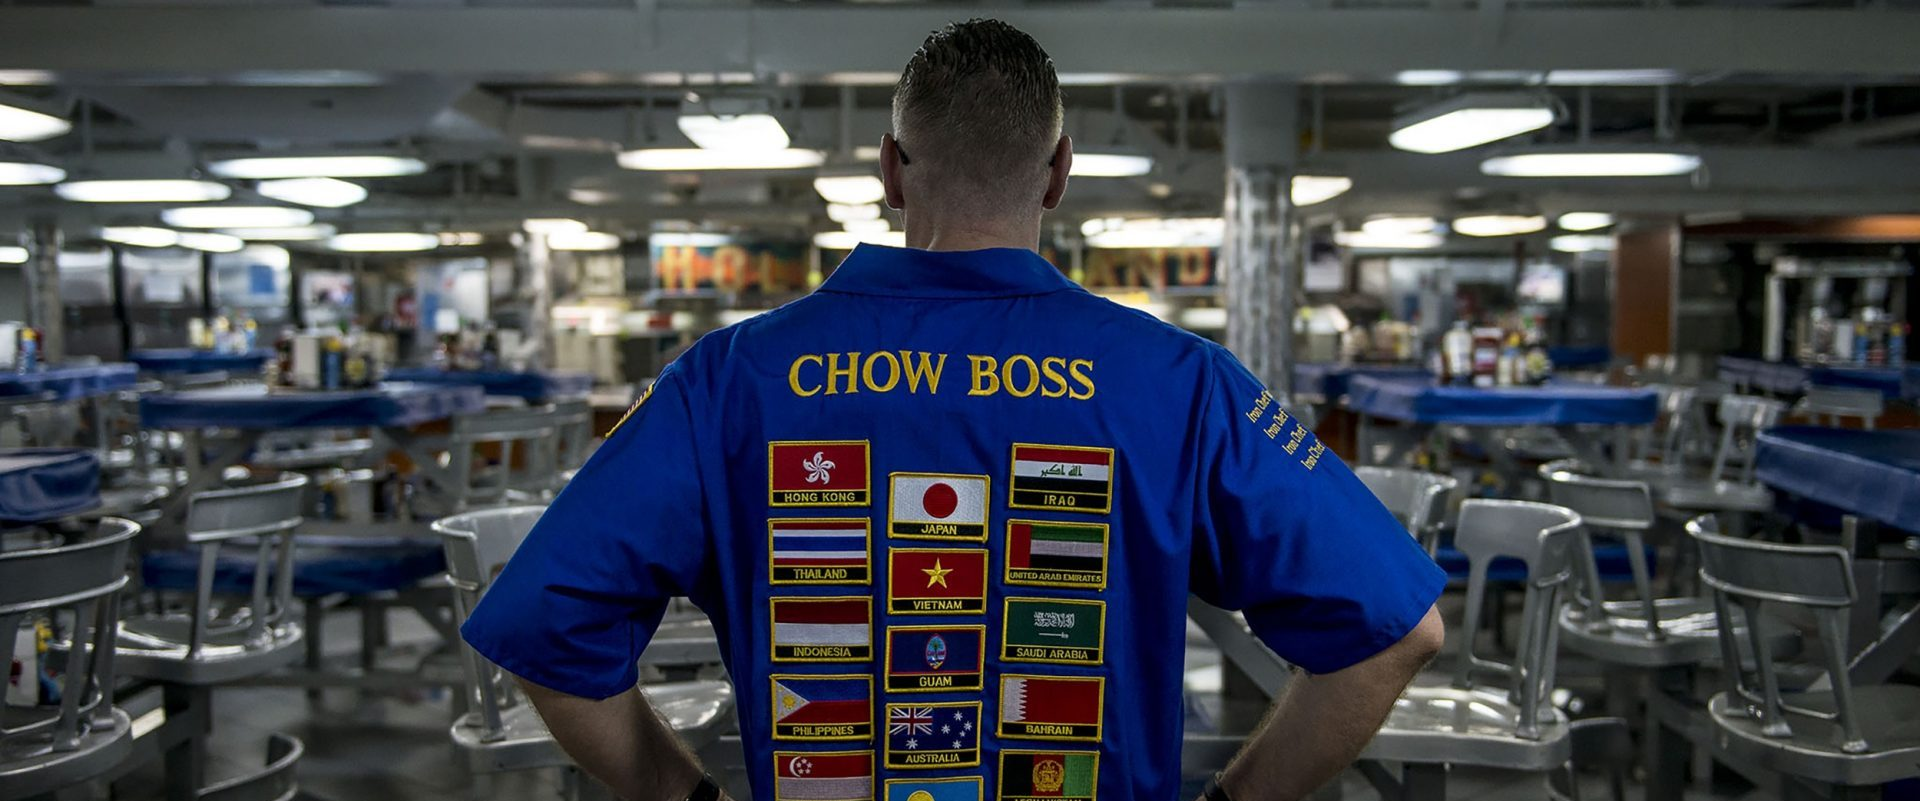 Recipes, Navy cook with Chow Boss embroidered on back of shirt, looking over cafeteria